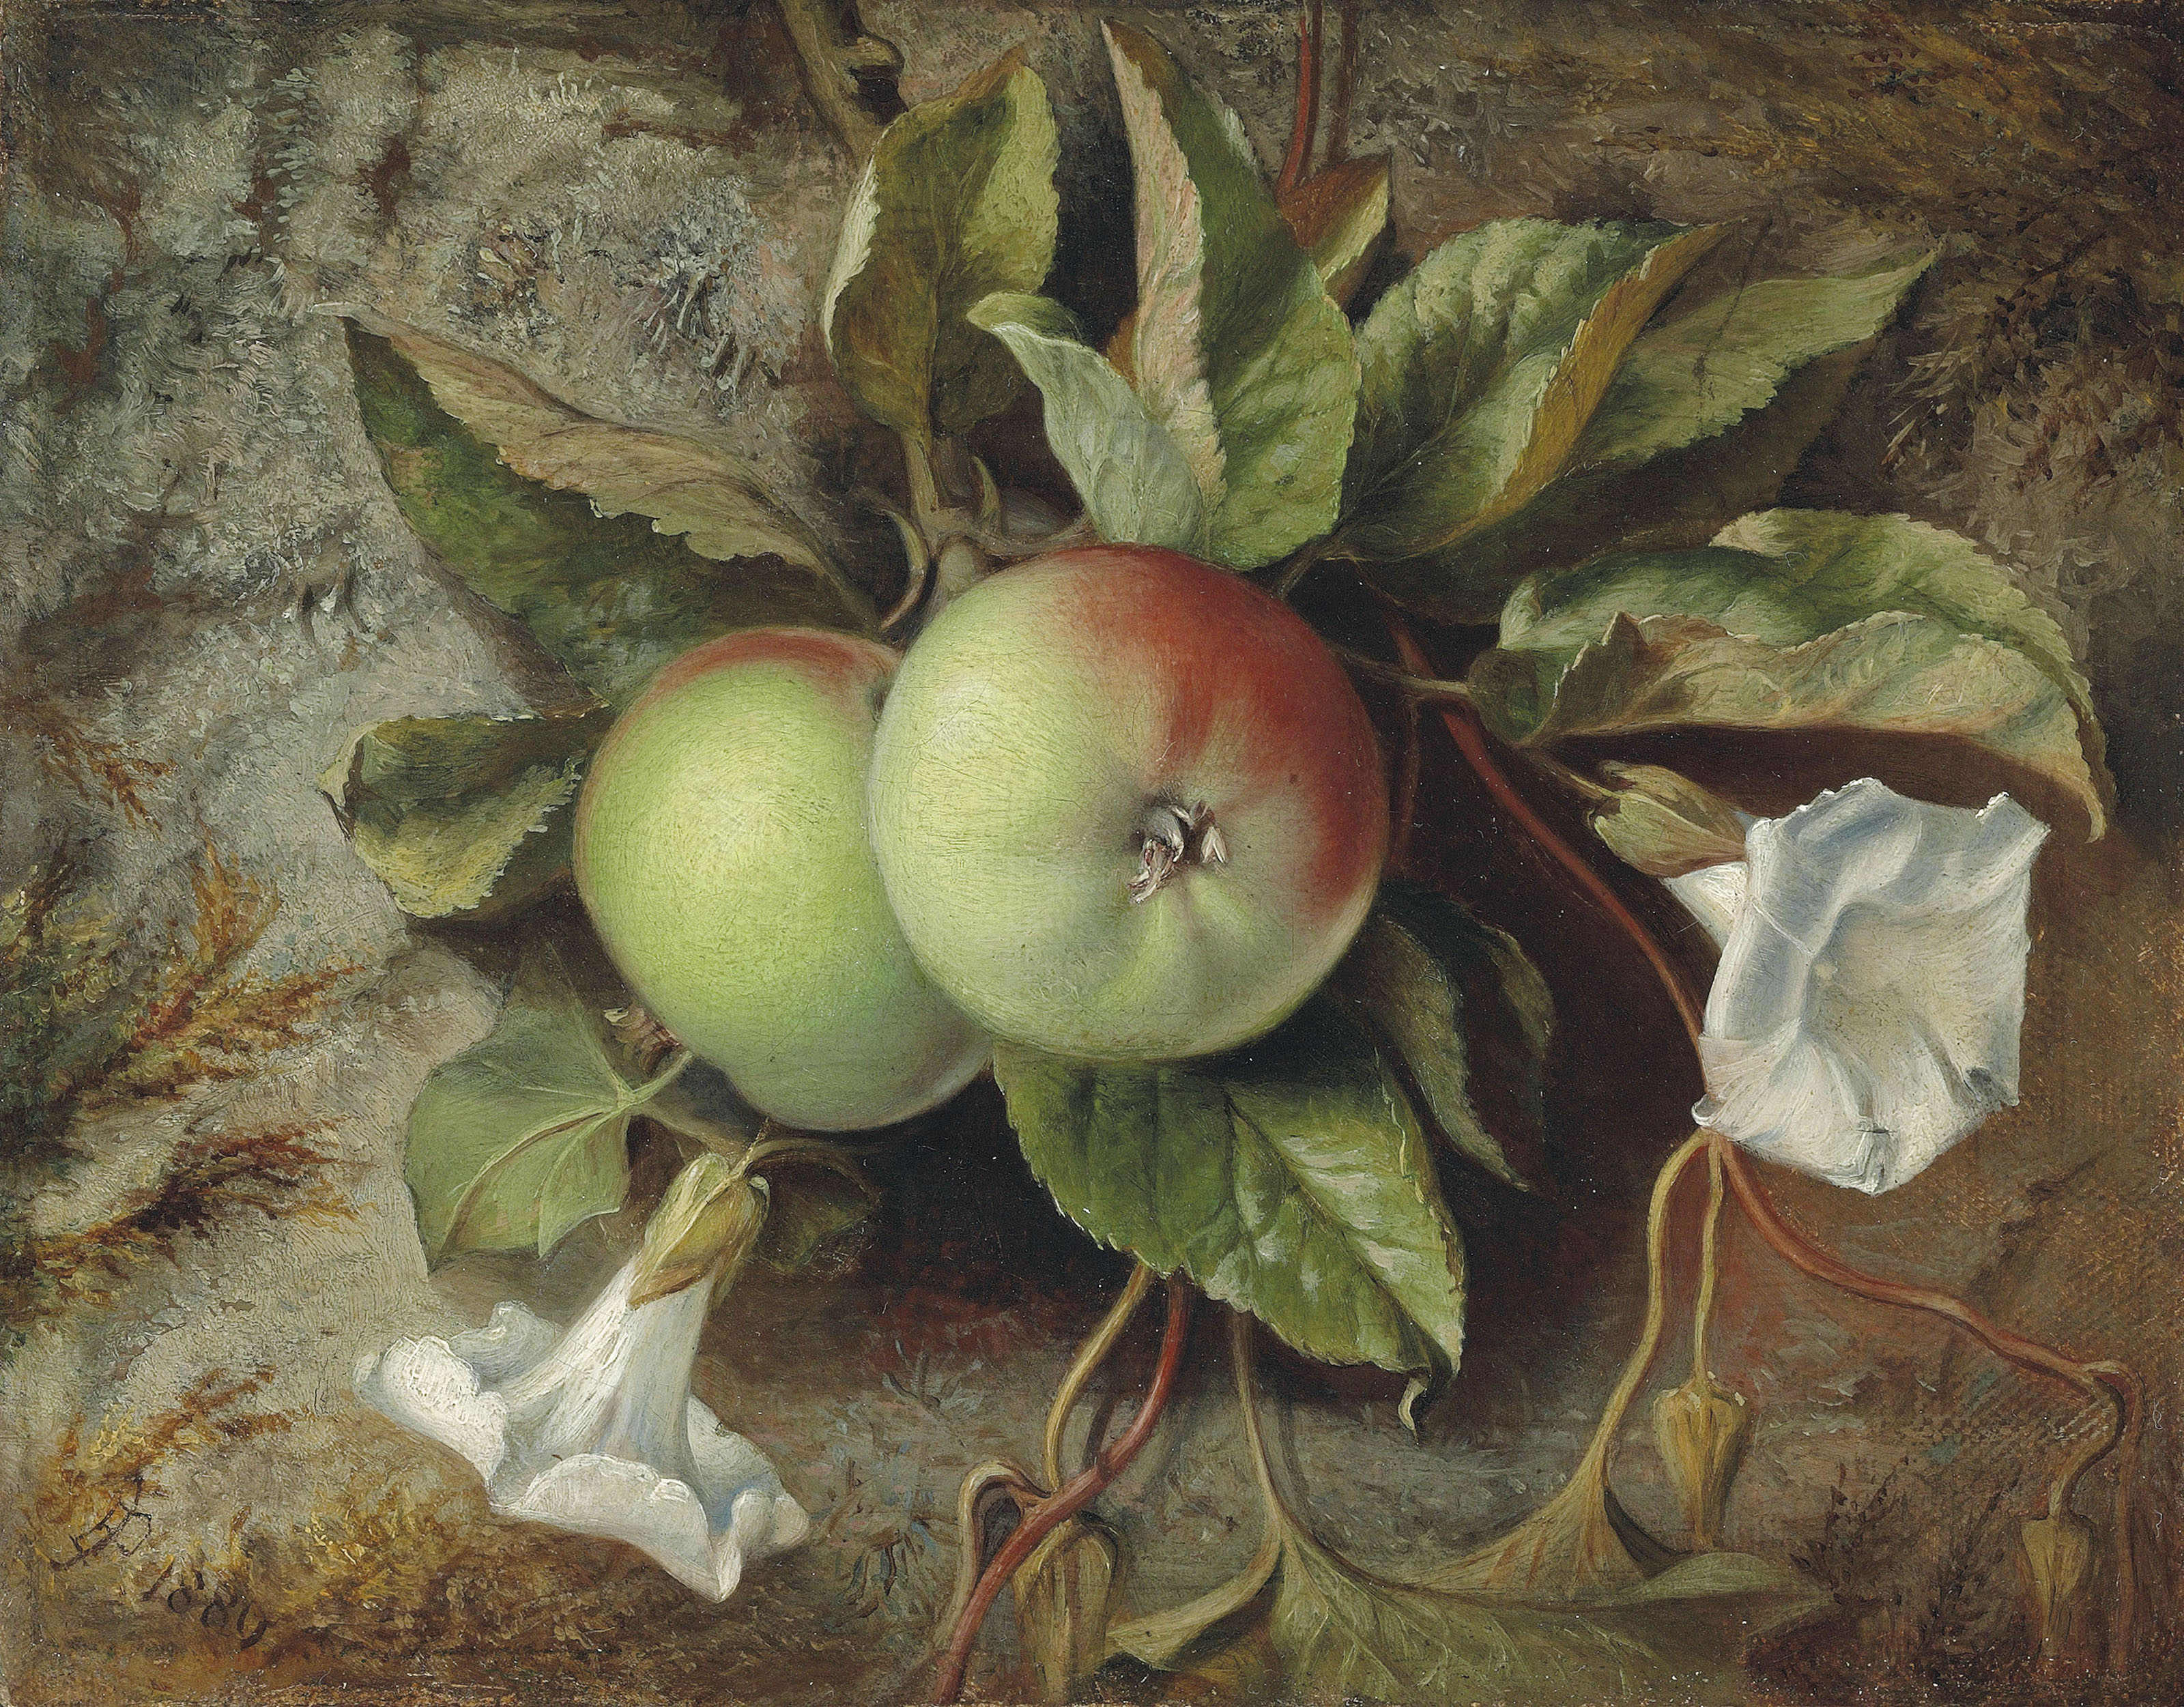 Autumn: Apples and convolvulus